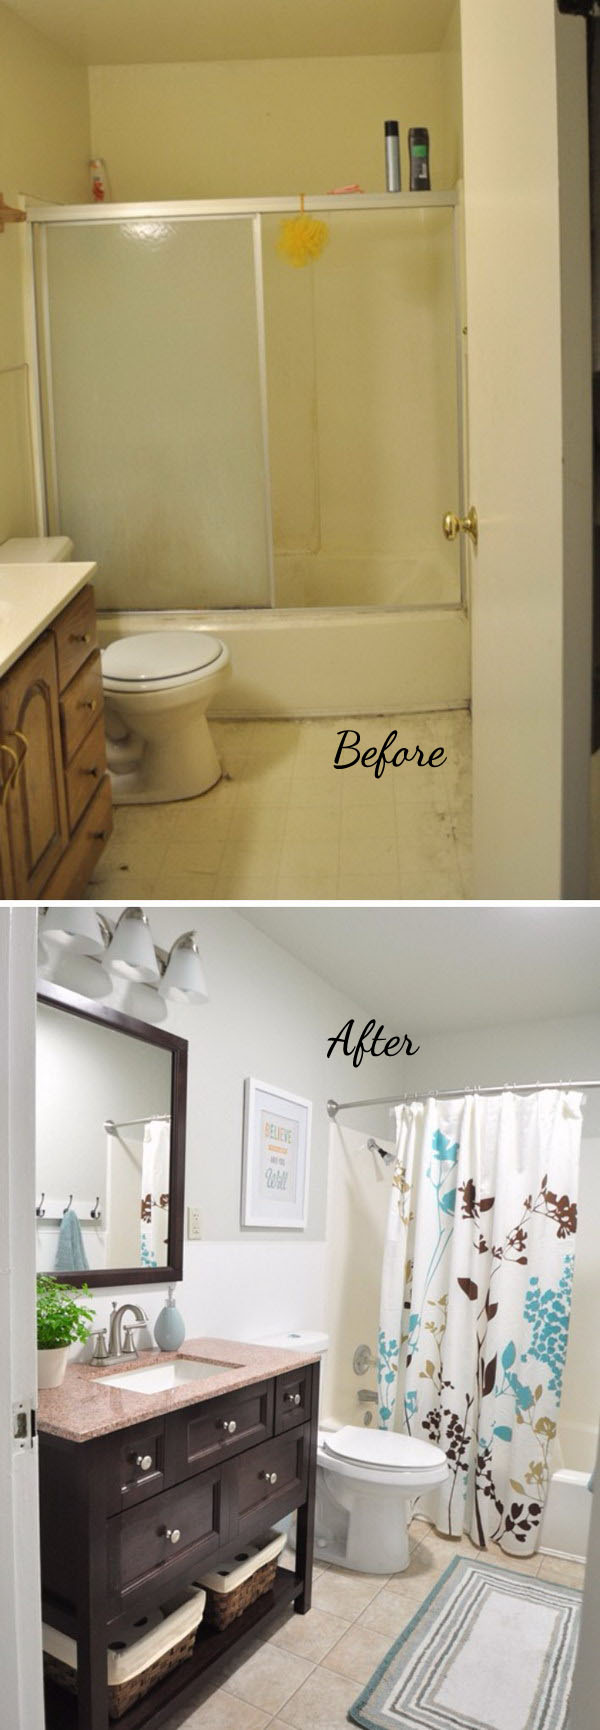 Amazing Small Bathroom Remodel Before After